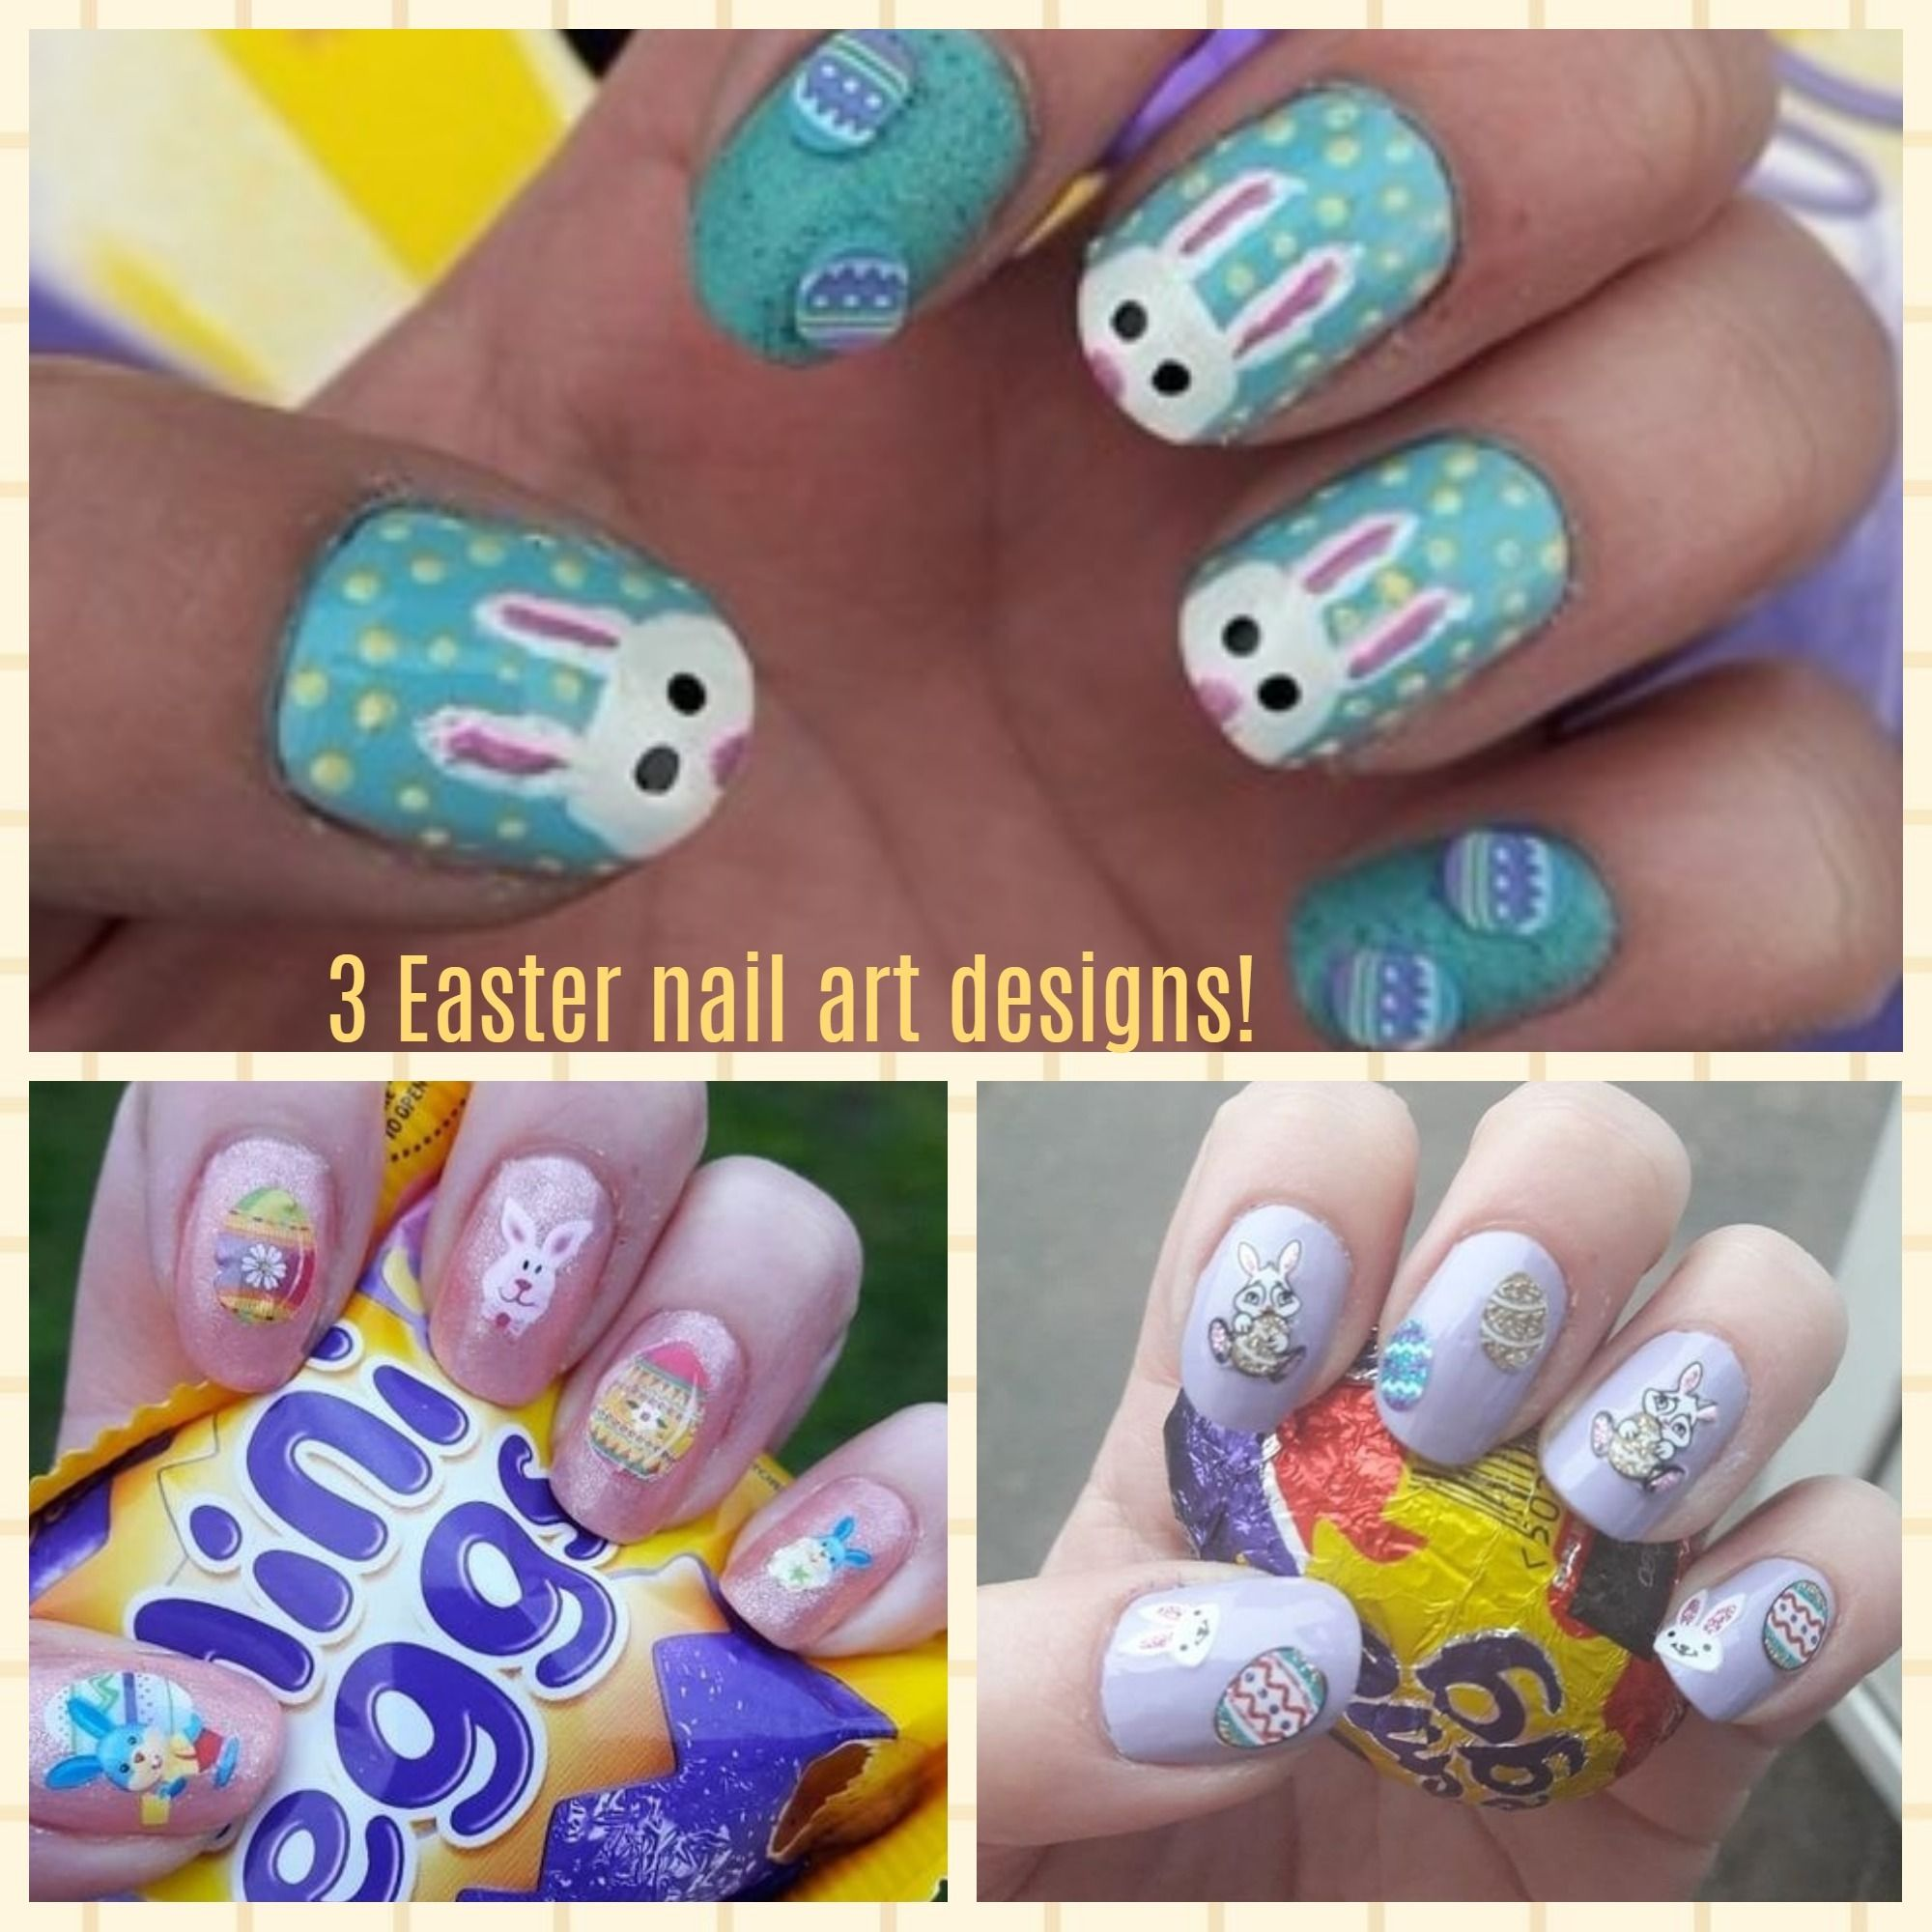 3 simple Easter nail art designs!-Bunnies & Easter Eggs! | Easter ...